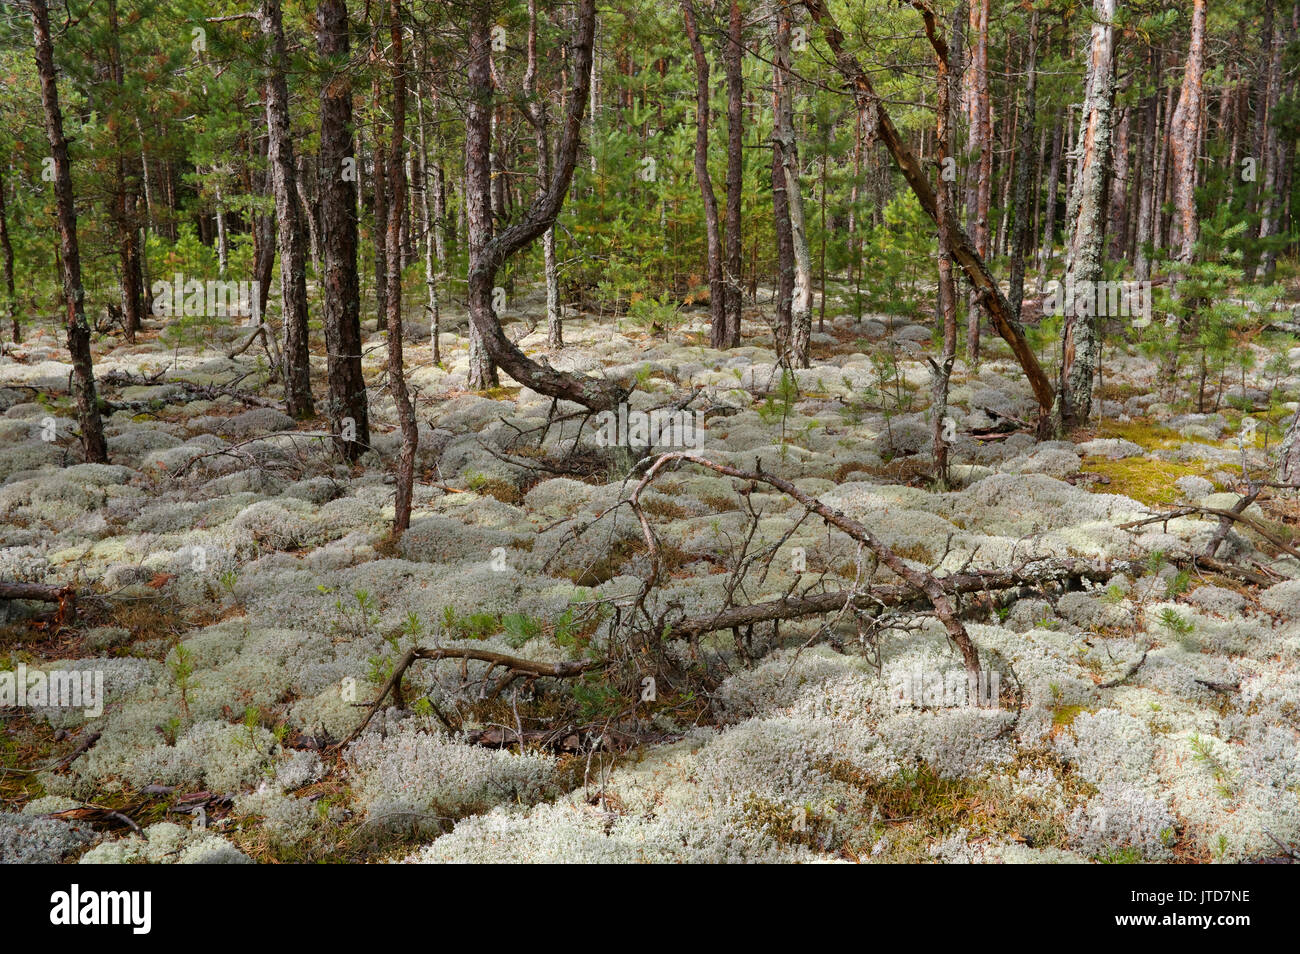 Kihnu Island Pine Forest. Estonia. 5th August 2017 Stock Photo